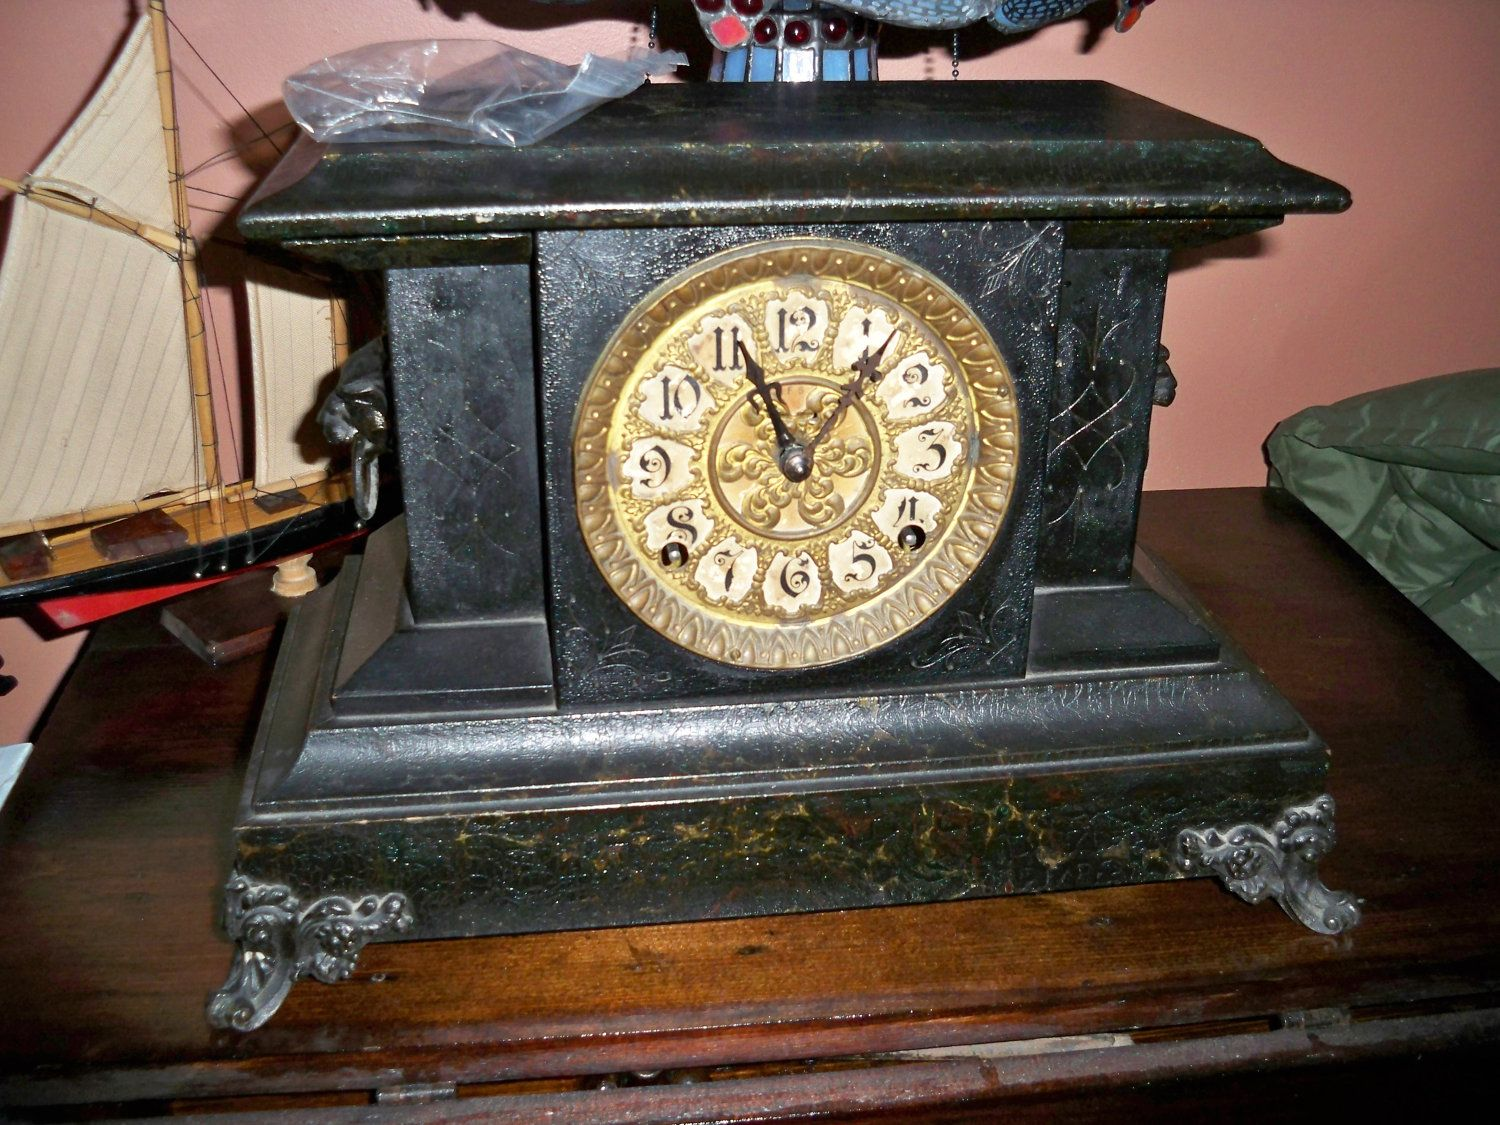 Antique Victorian E Ingraham Mantle Clock Circa 1890s More Than 100 Years Old 125 00 Via Etsy Vintage Mantle Clocks Vintage Clock Antique Clocks